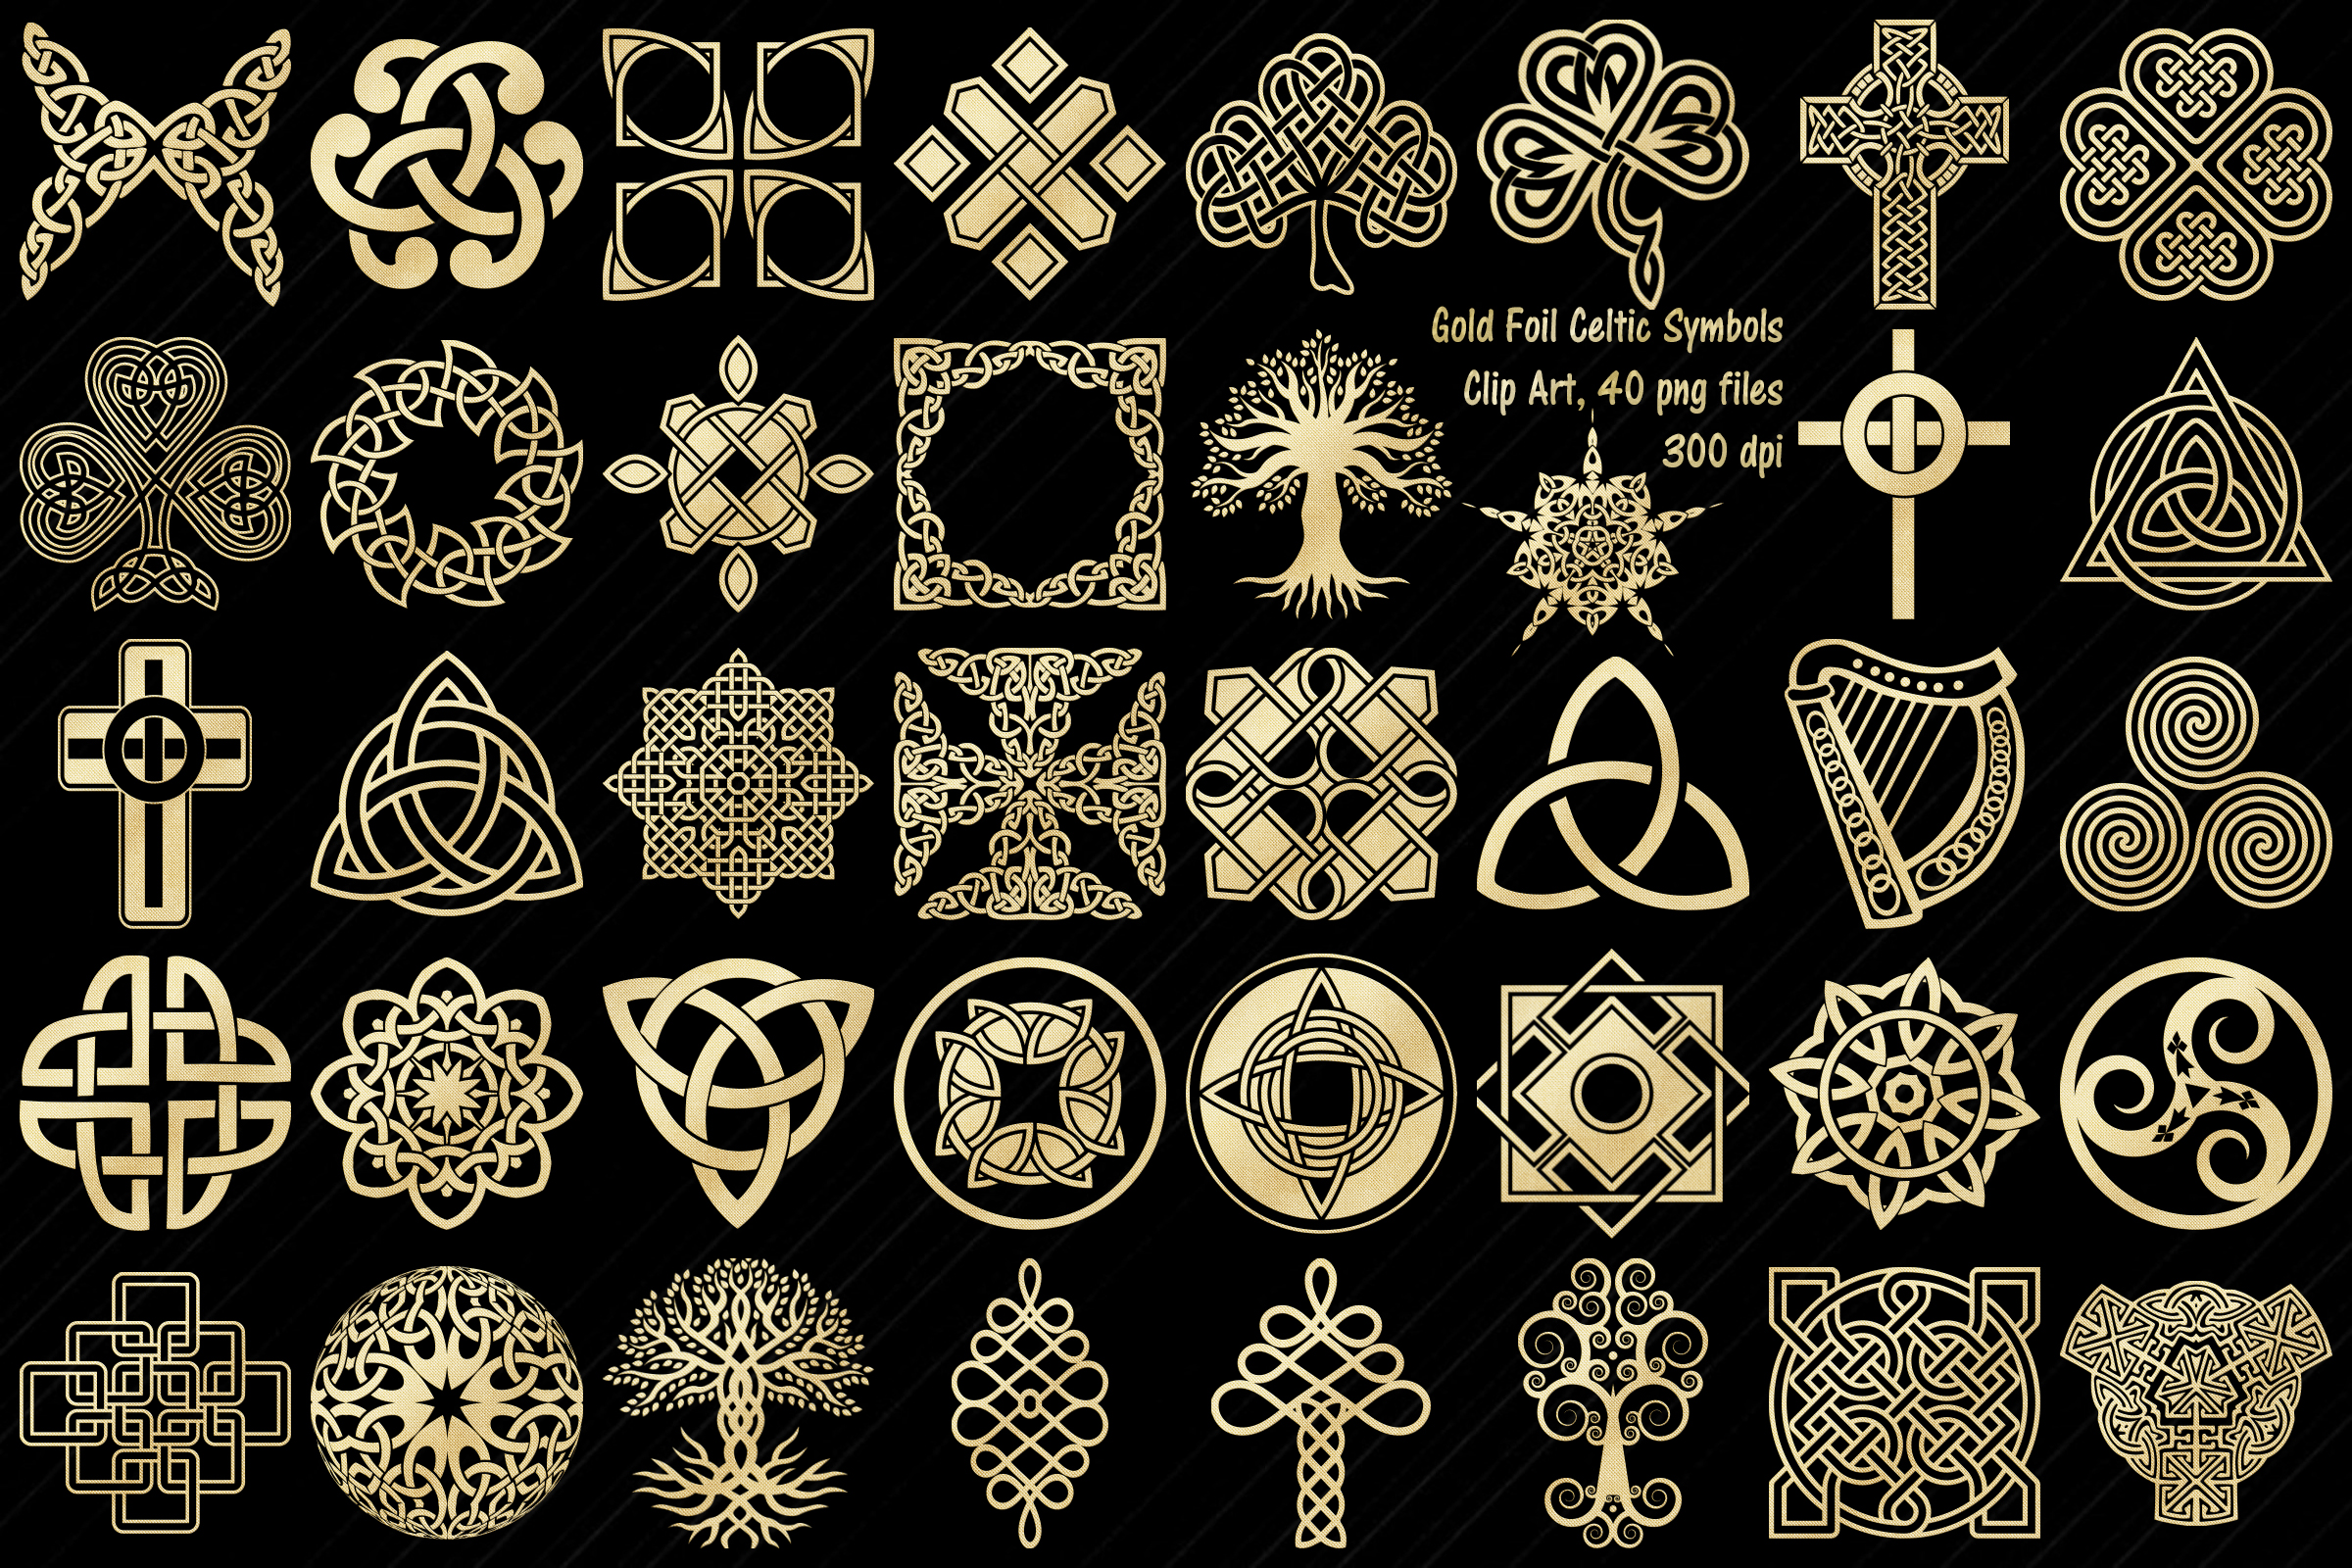 Gold Foil Celtic Symbols, Knots, Crosses Clip ArtSymbols